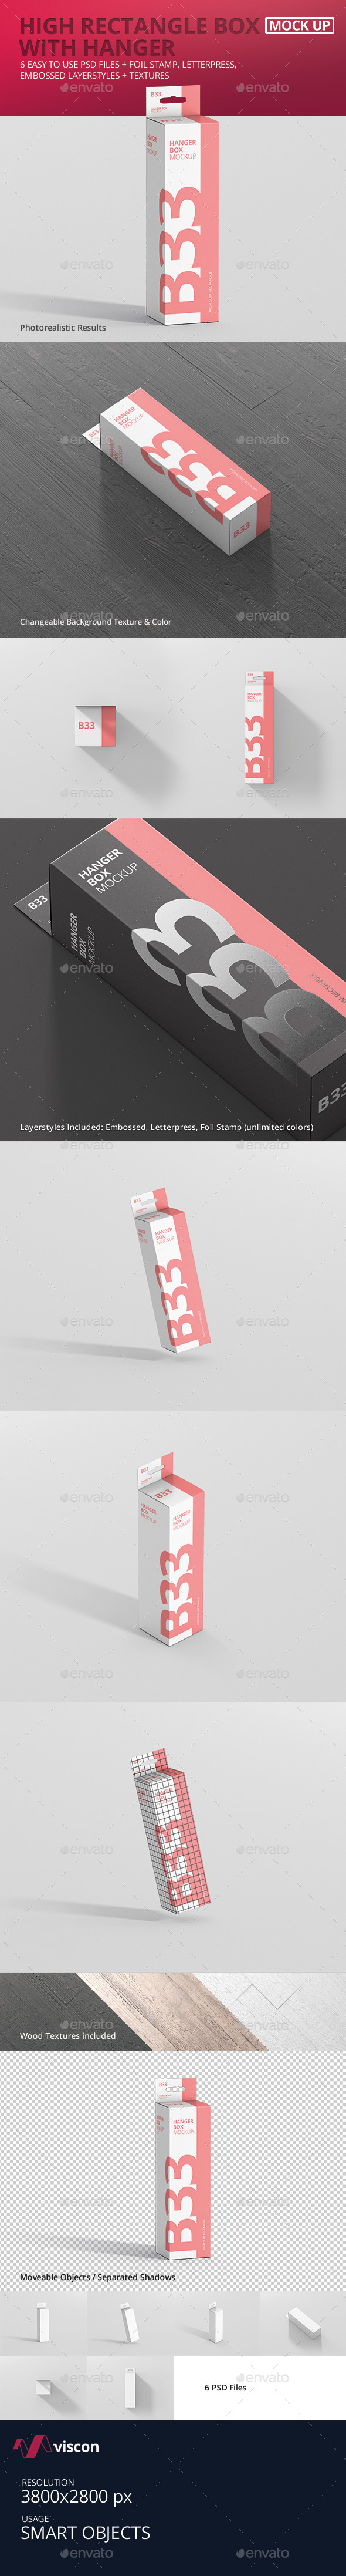 Box Mockup - High Slim Rectangle Size with Hanger - Miscellaneous Packaging